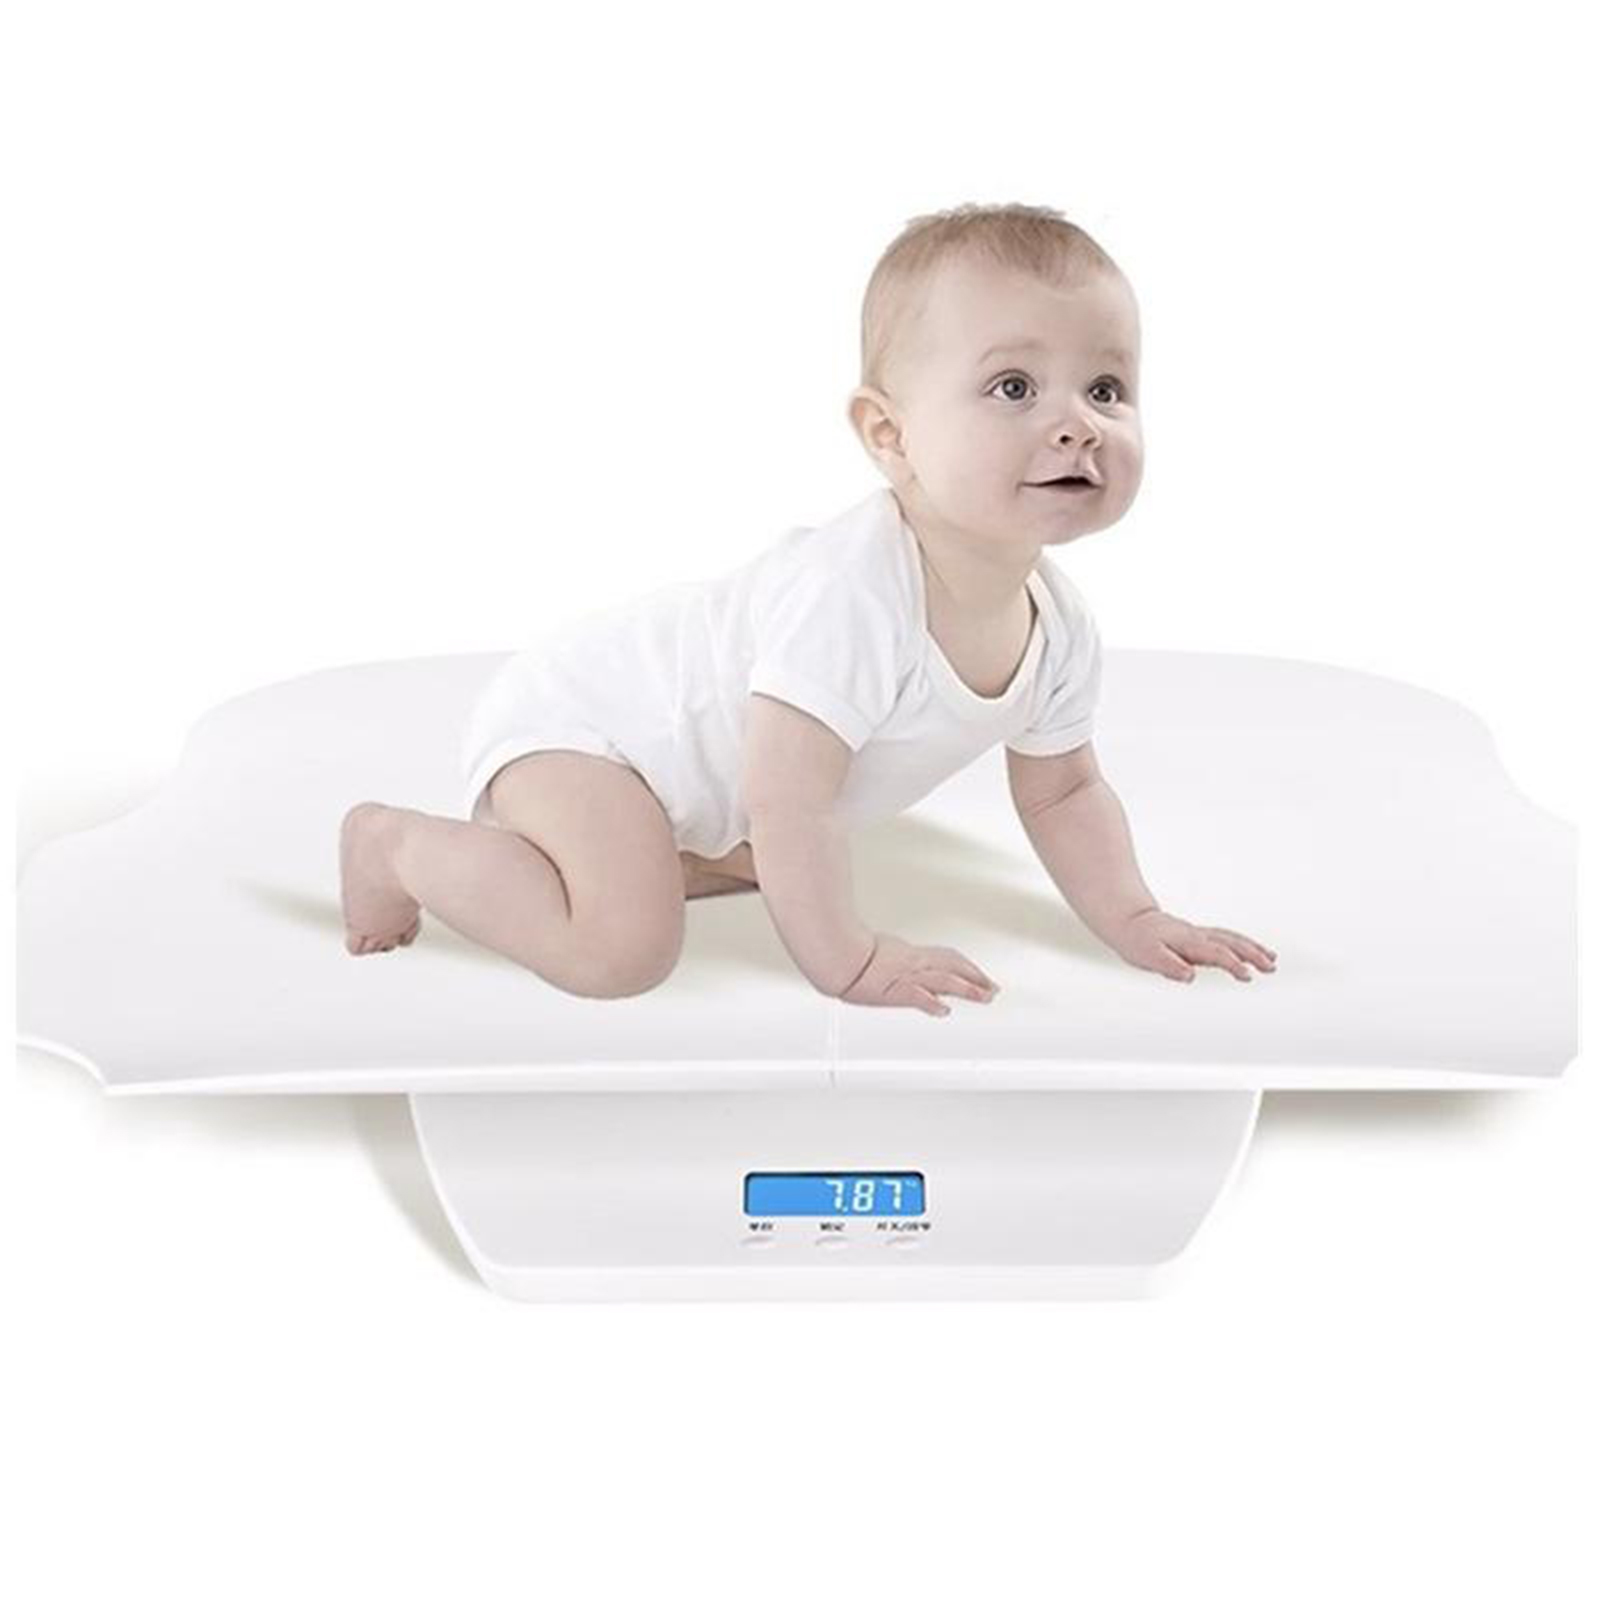 Electronic Digital Baby Weighing Scale Infant Pet Newborn Puppy Cat Scales